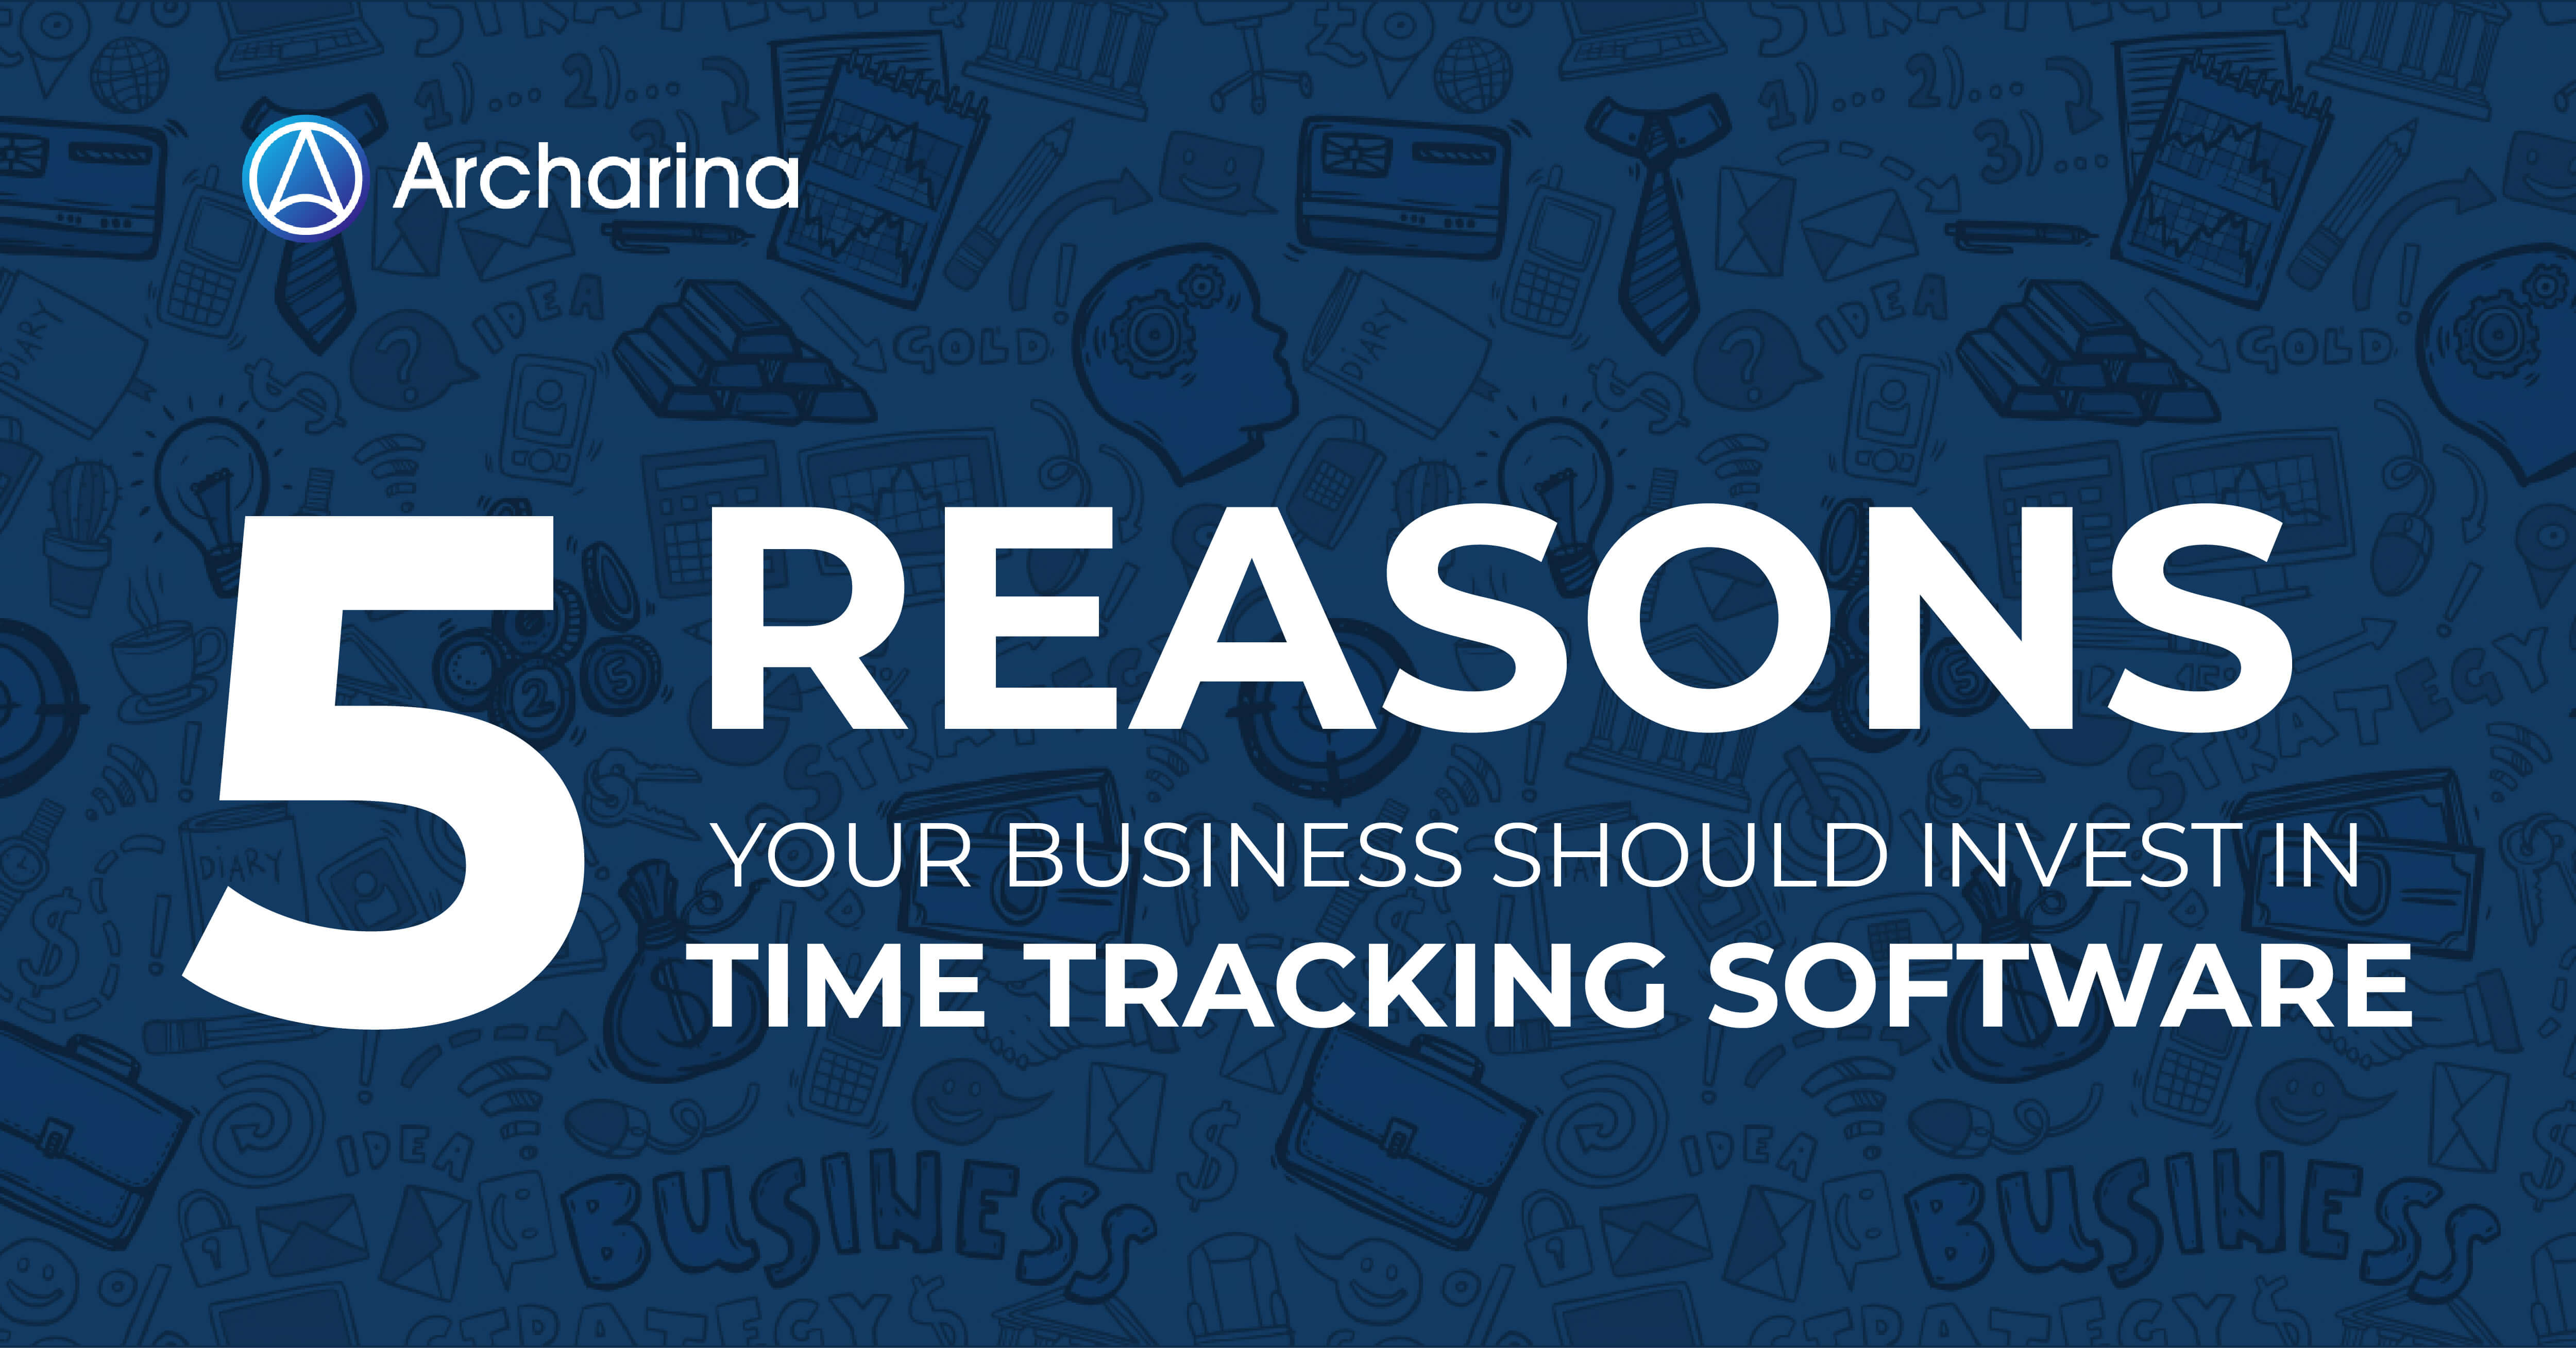 5 Reasons Your Business Should Invest in Time Tracking Software